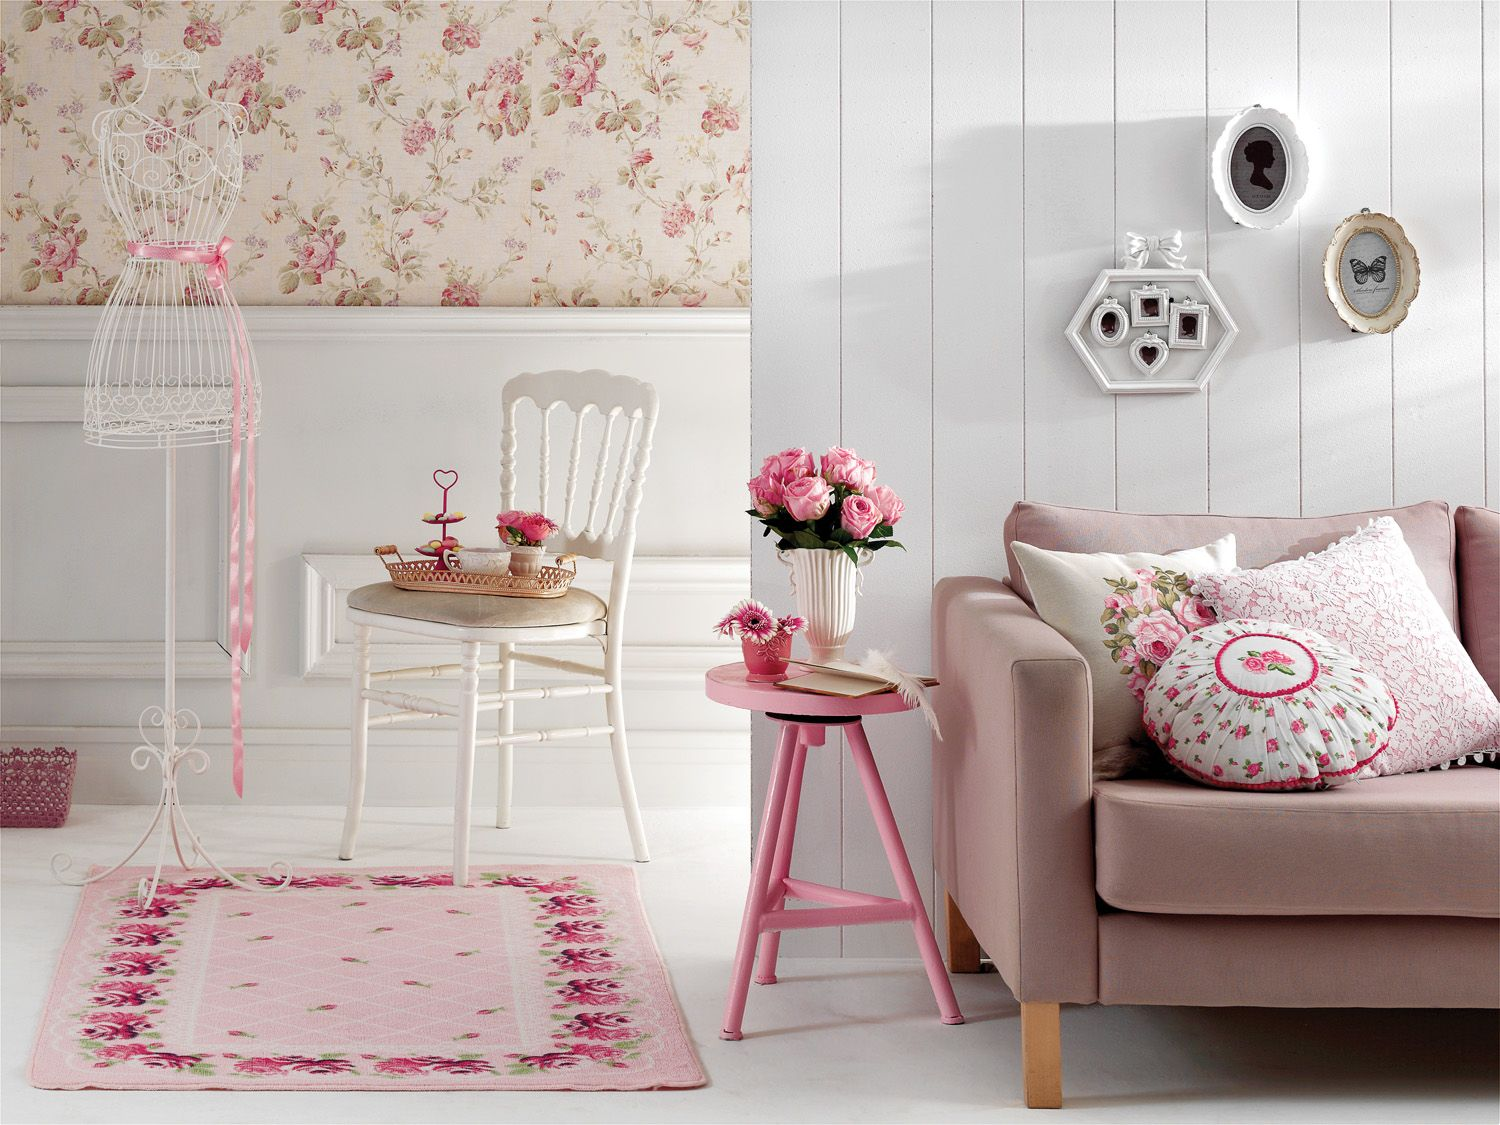 Home Decoration, #country #englishhome #pink | Home | Pinterest ...